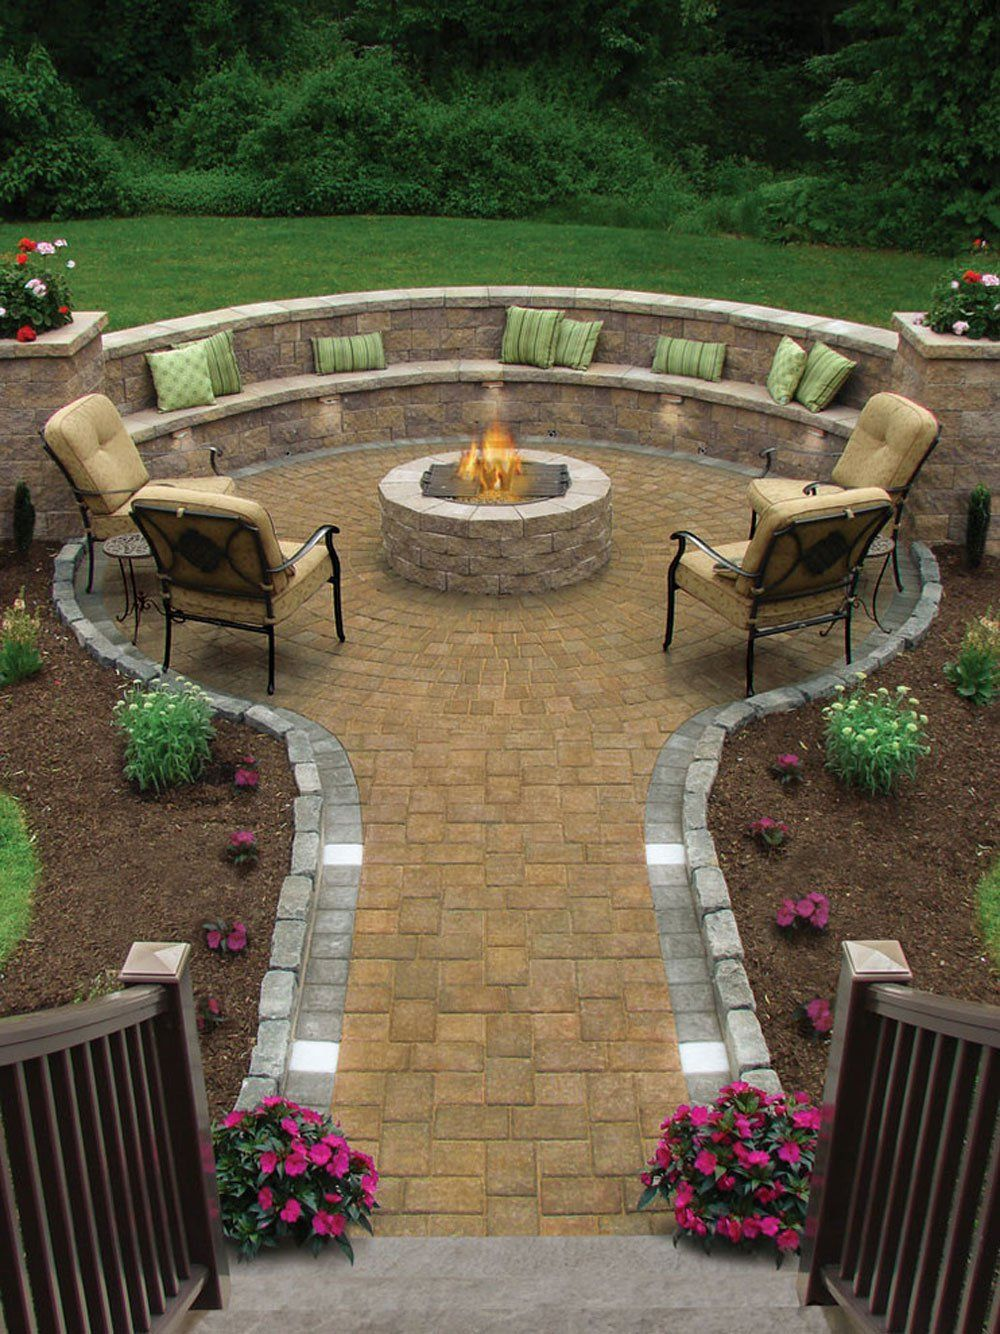 Yard Ideas 17 Of The Most Amazing Seating Area Around Fire Pit EVER